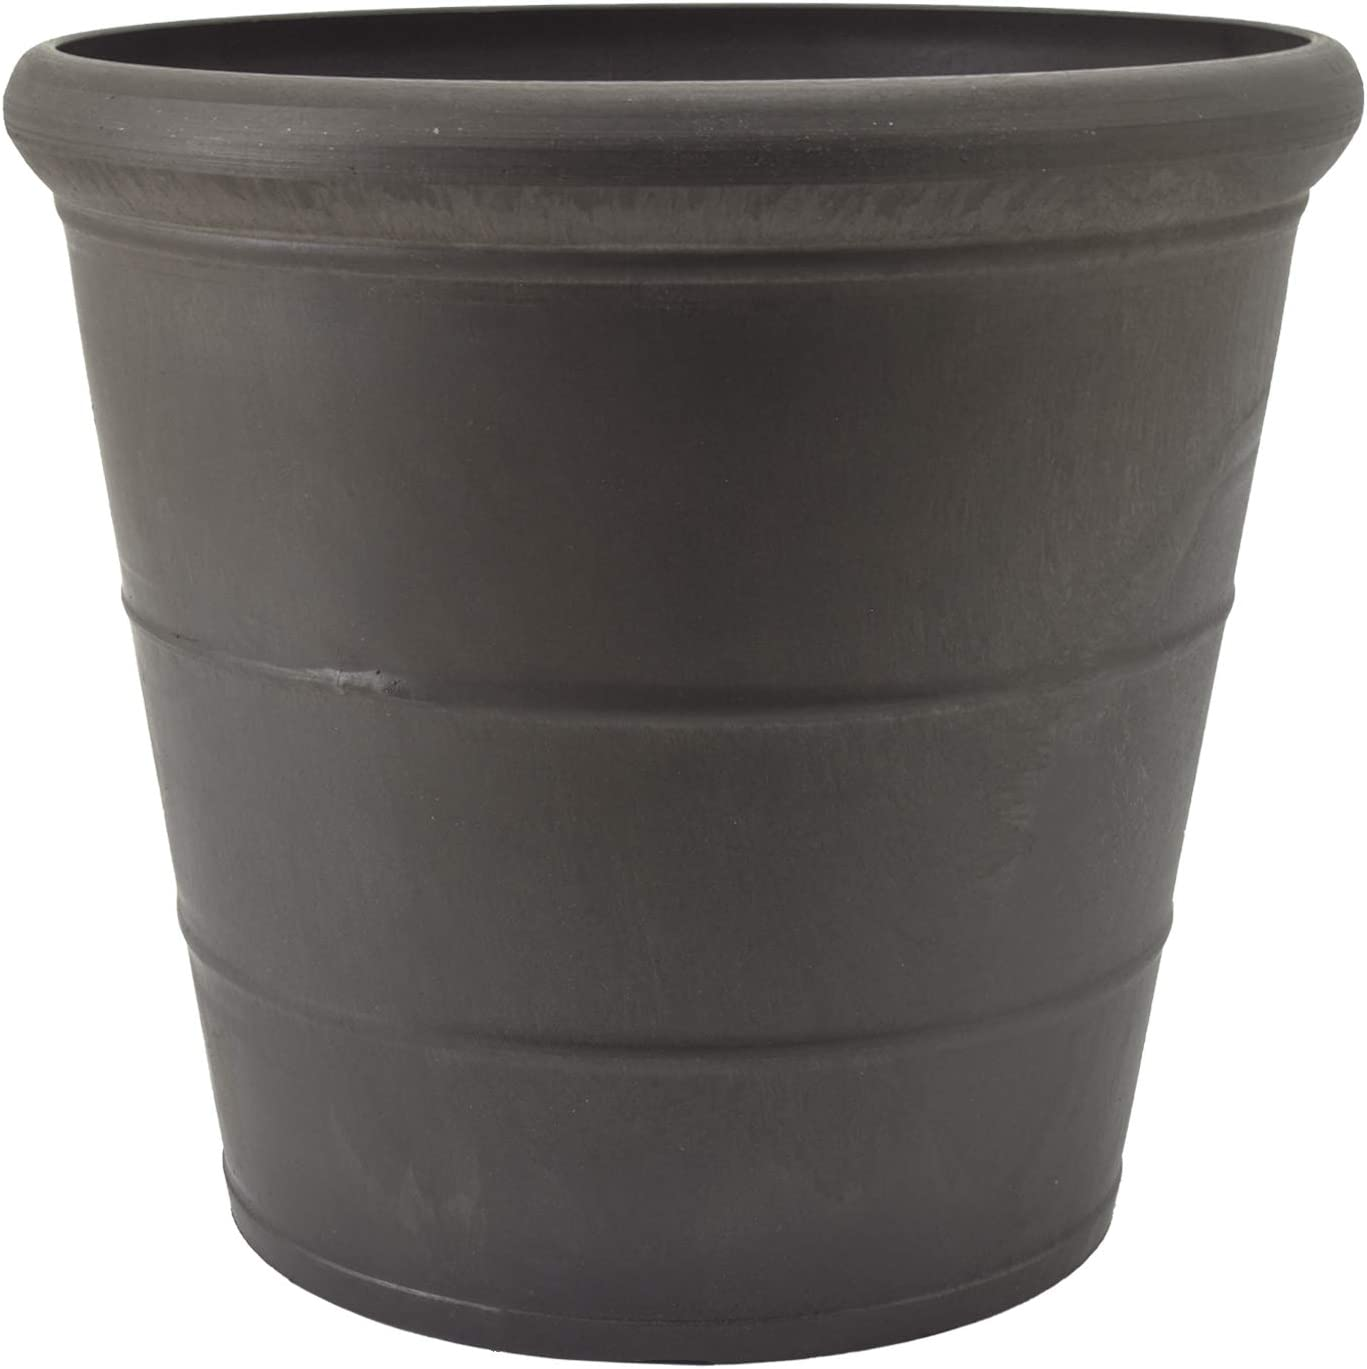 Arcadia Garden Products PSW NUR28DC Drop Planter, 11.5 by 10.5-Inch, Dark Charcoal